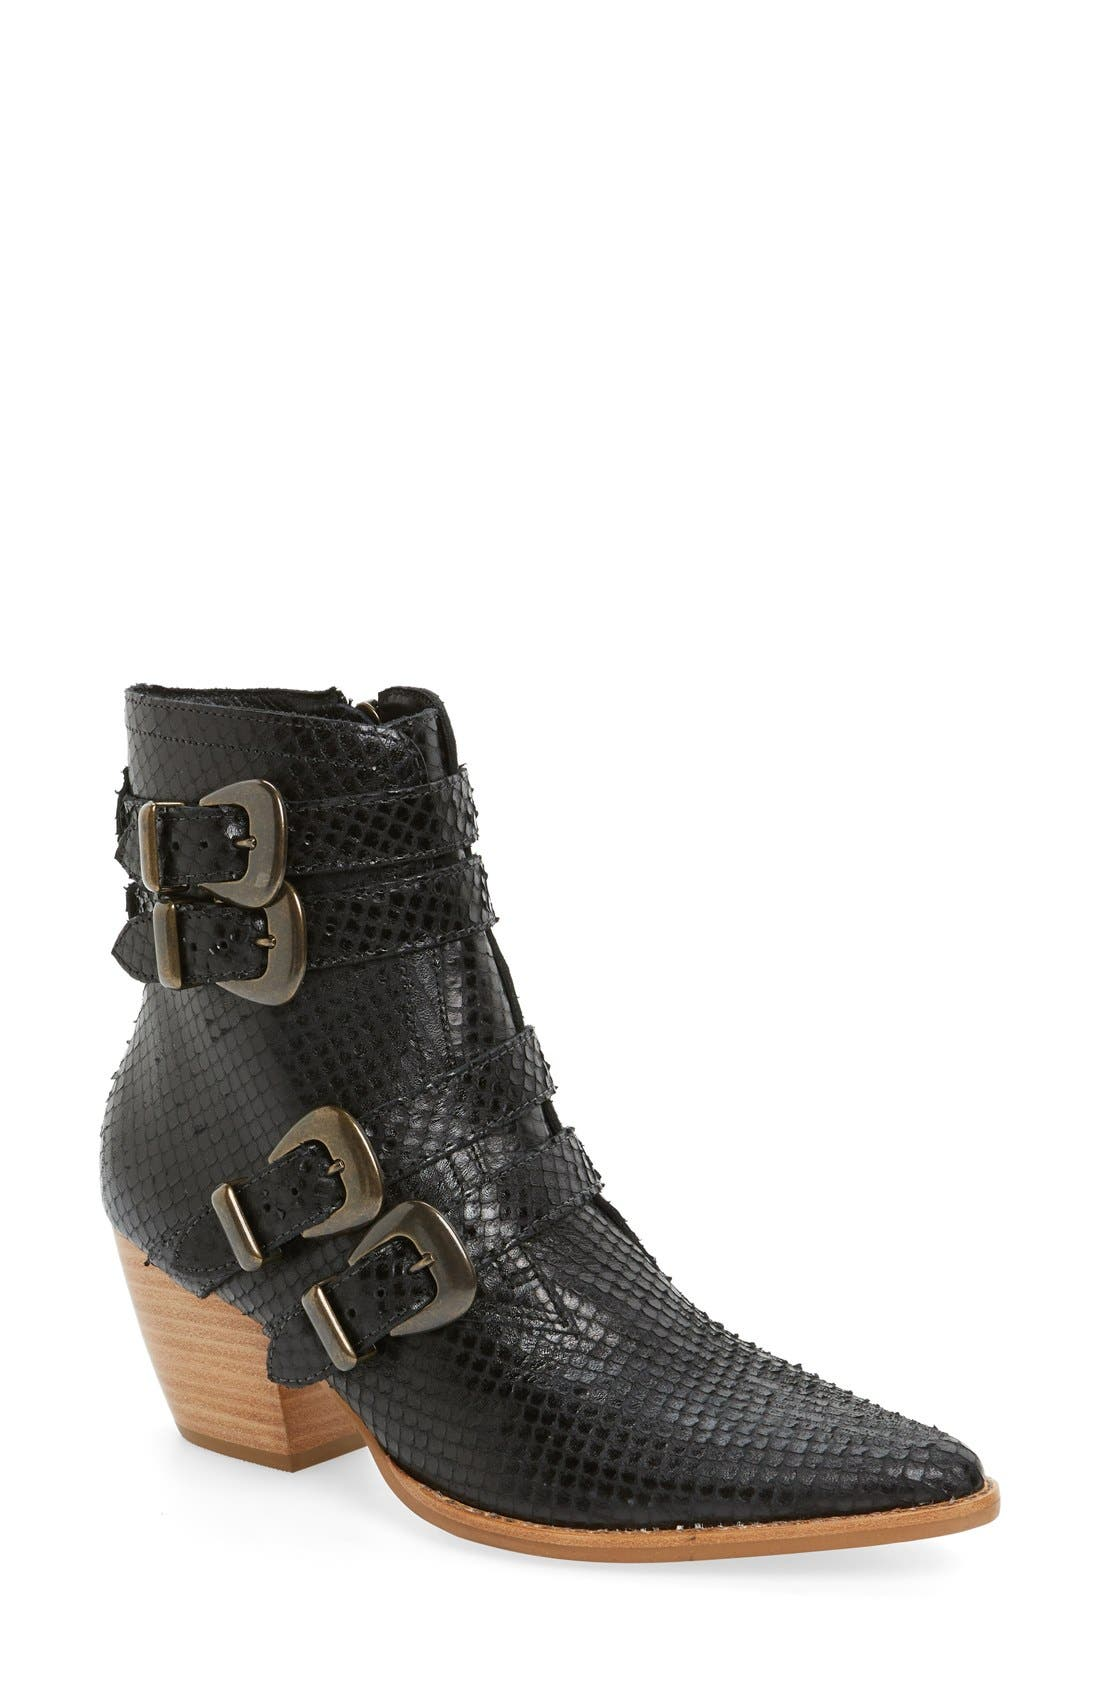 'Harvey' Embossed Buckle Boot, Main, color, 001